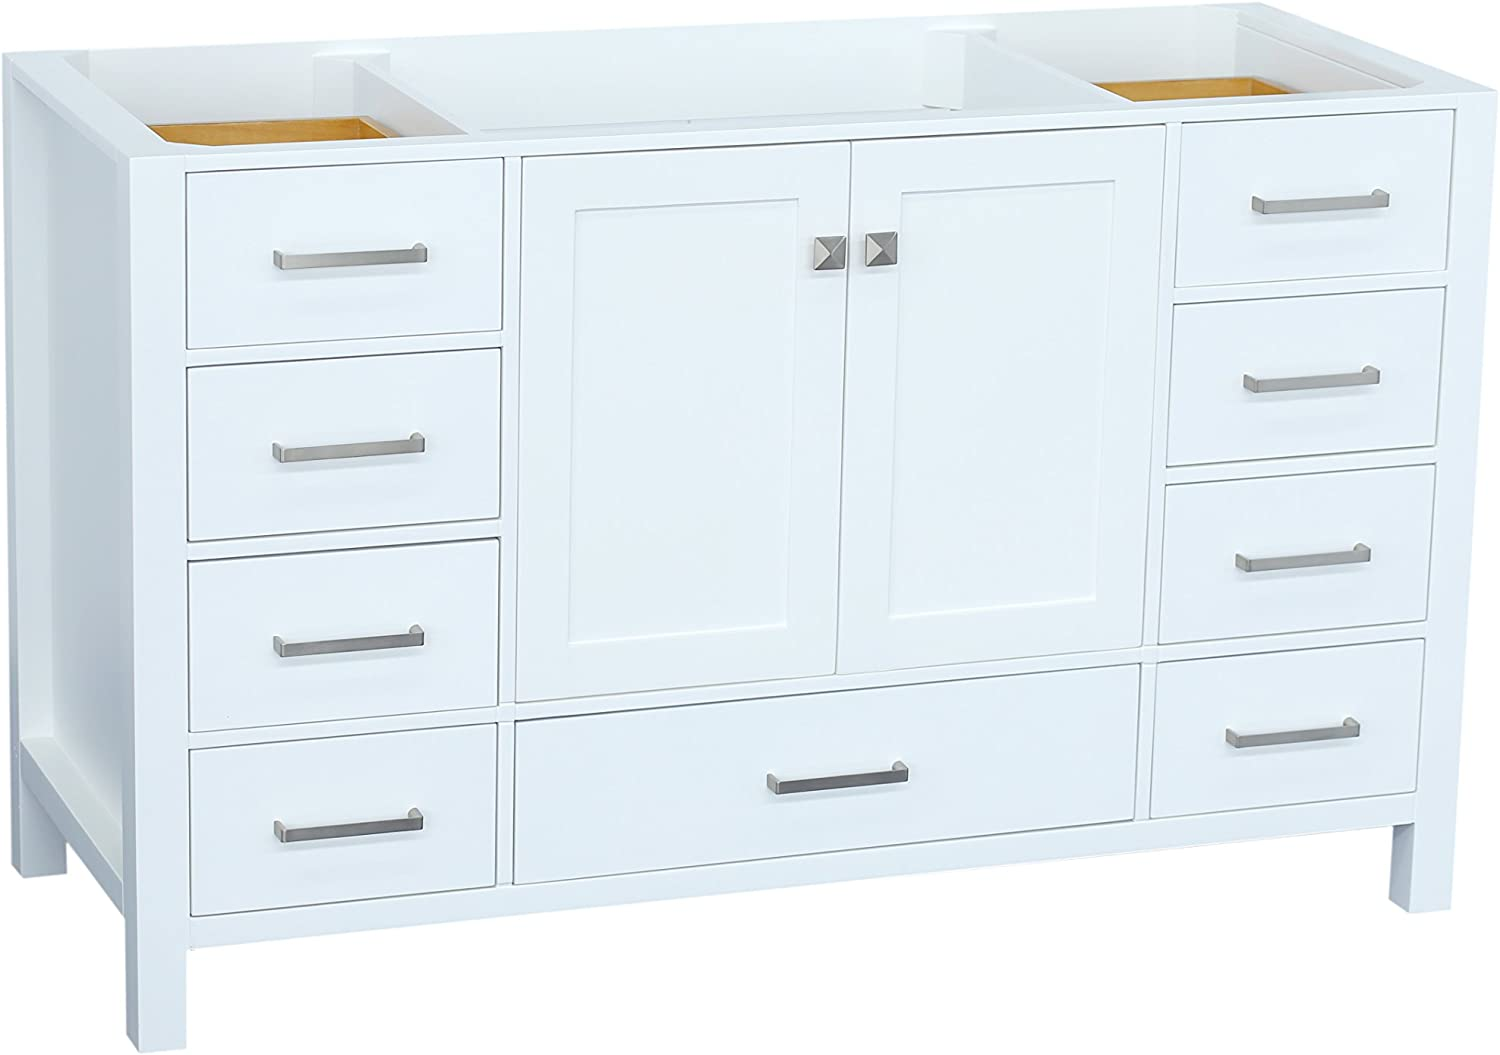 ARIEL Cambridge A055S-BC-WHT 54 Inch Single Solid Wood White Bathroom Vanity Base Cabinet with 2 Soft-Closing Doors and 9 Self-Closing Drawers